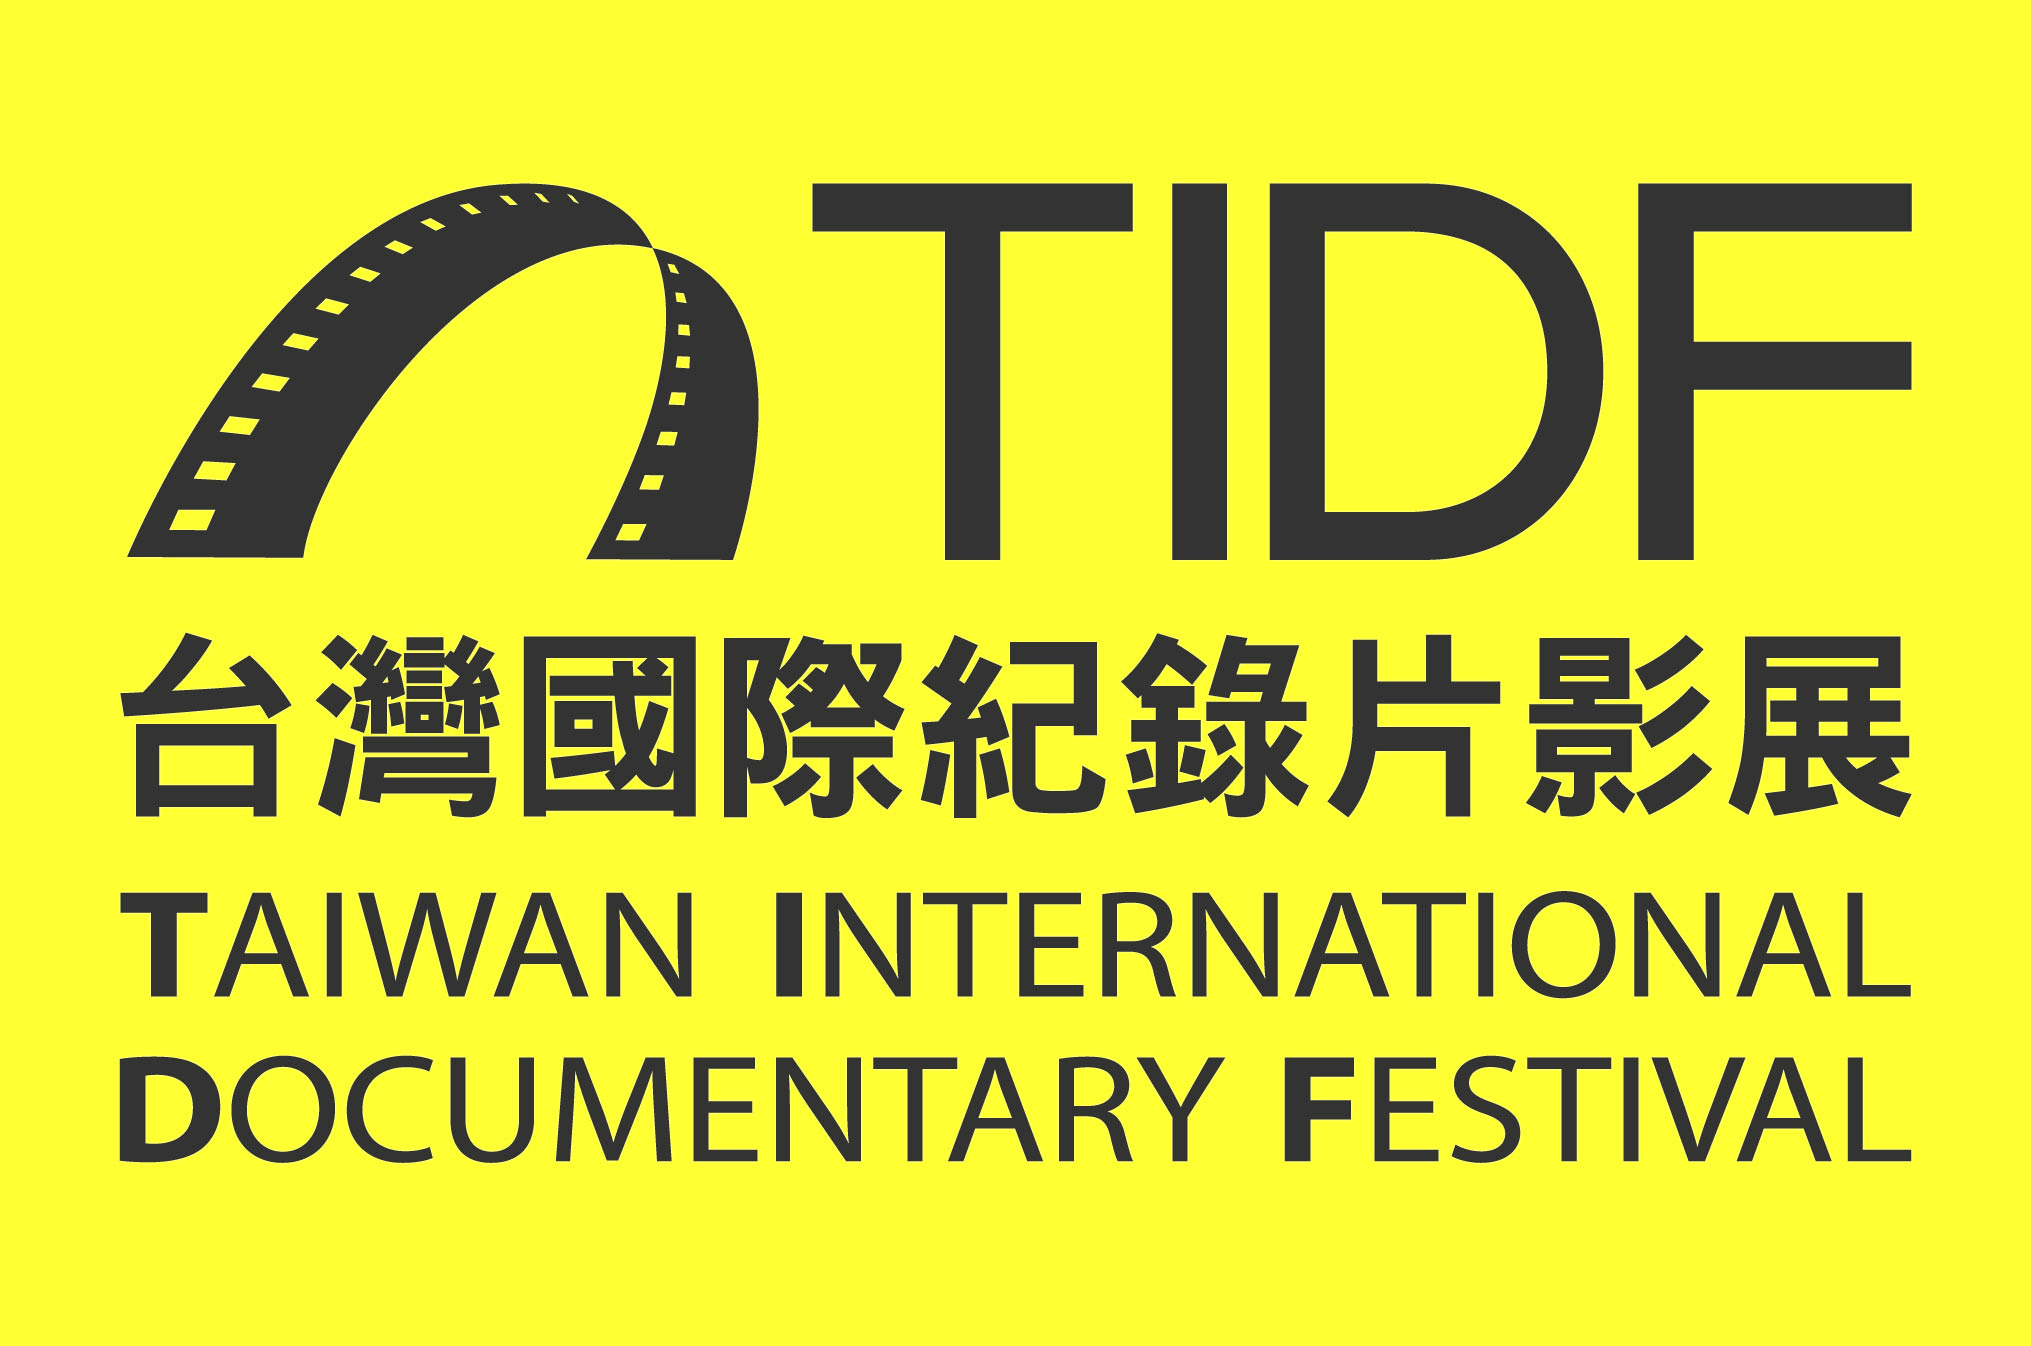 Taiwan International Documentary Festival